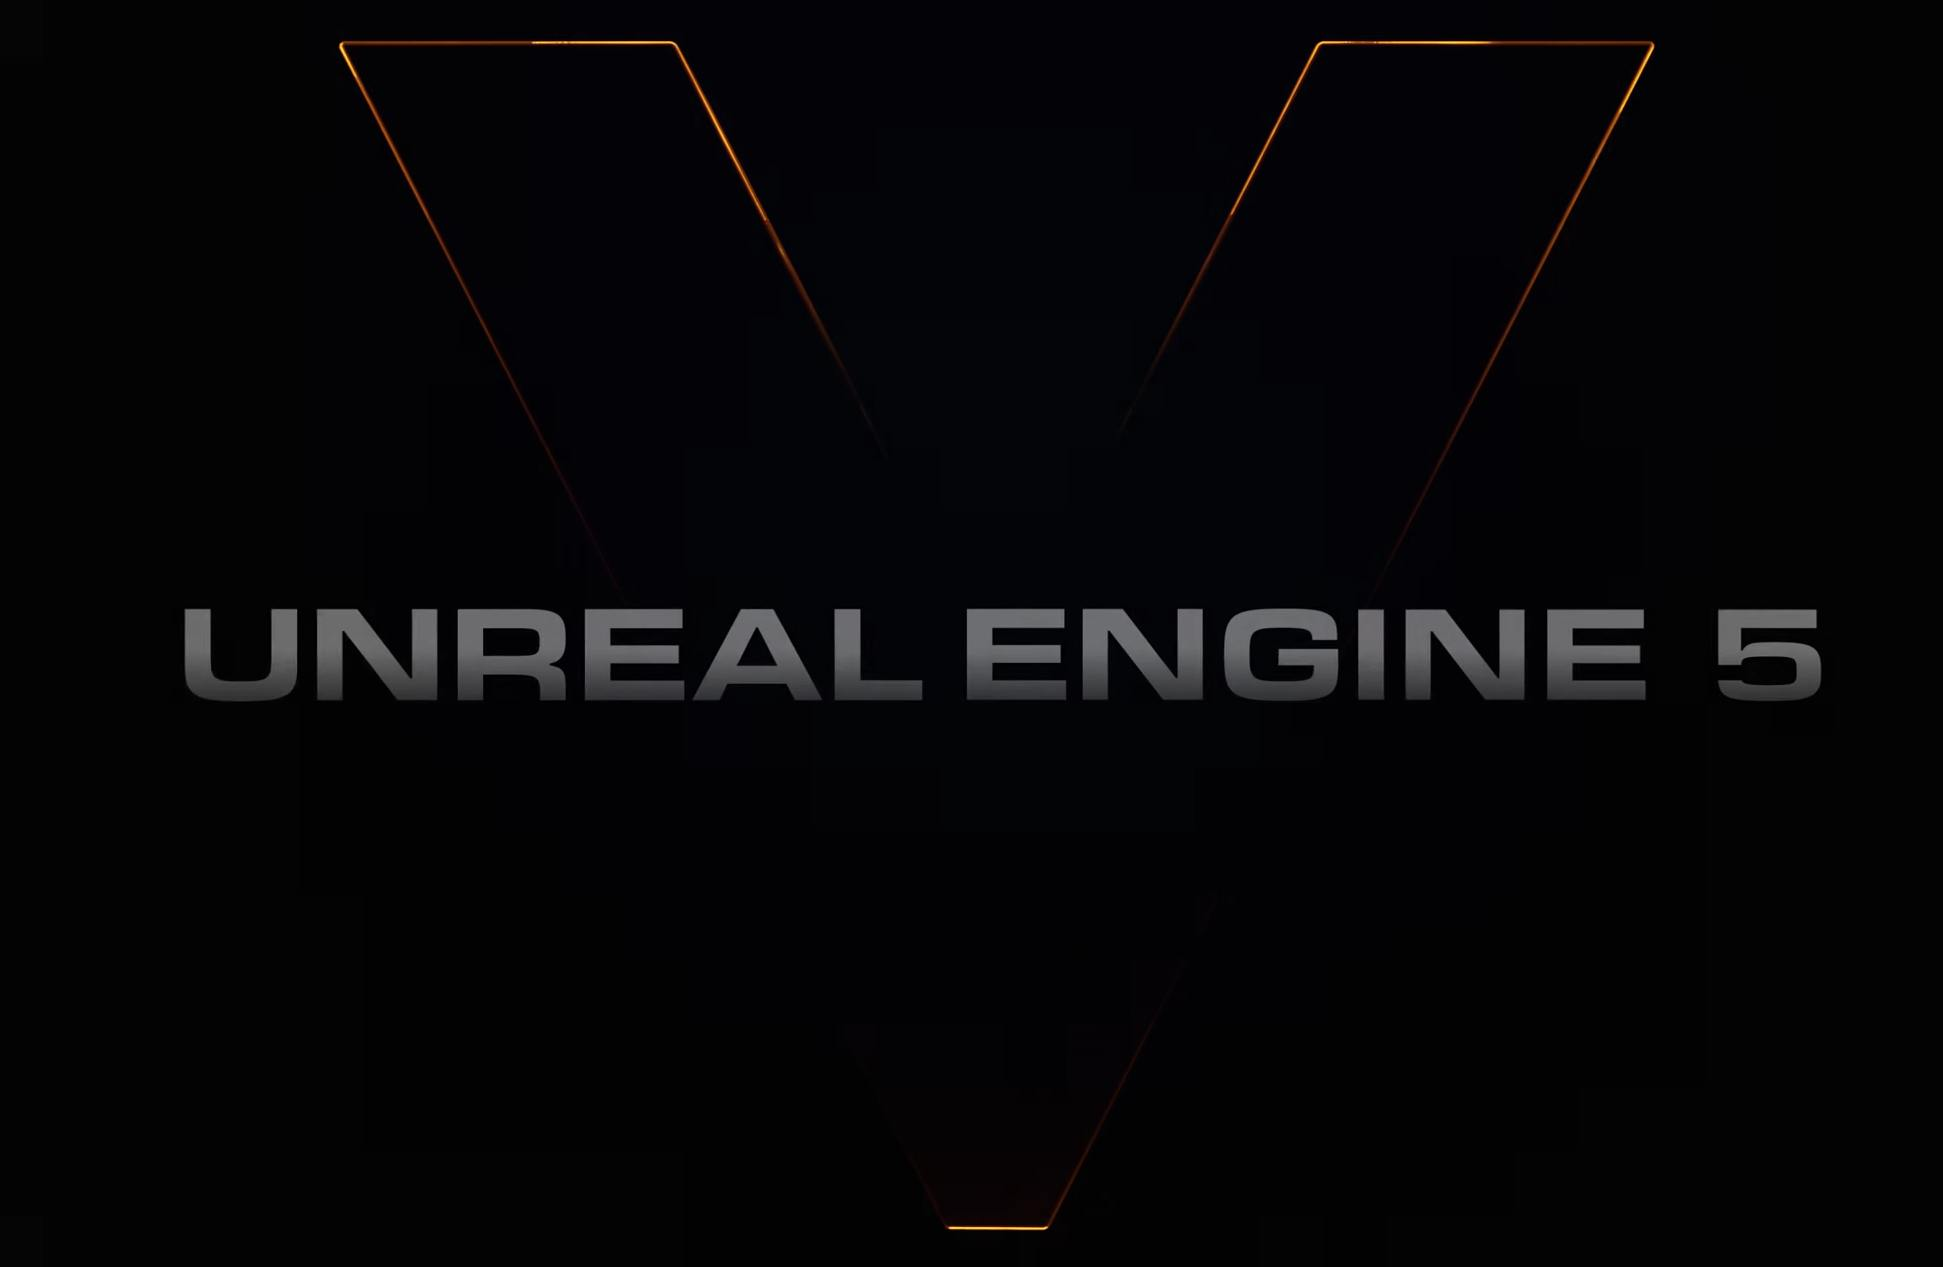 unreal engine 5 epic games microsoft apple